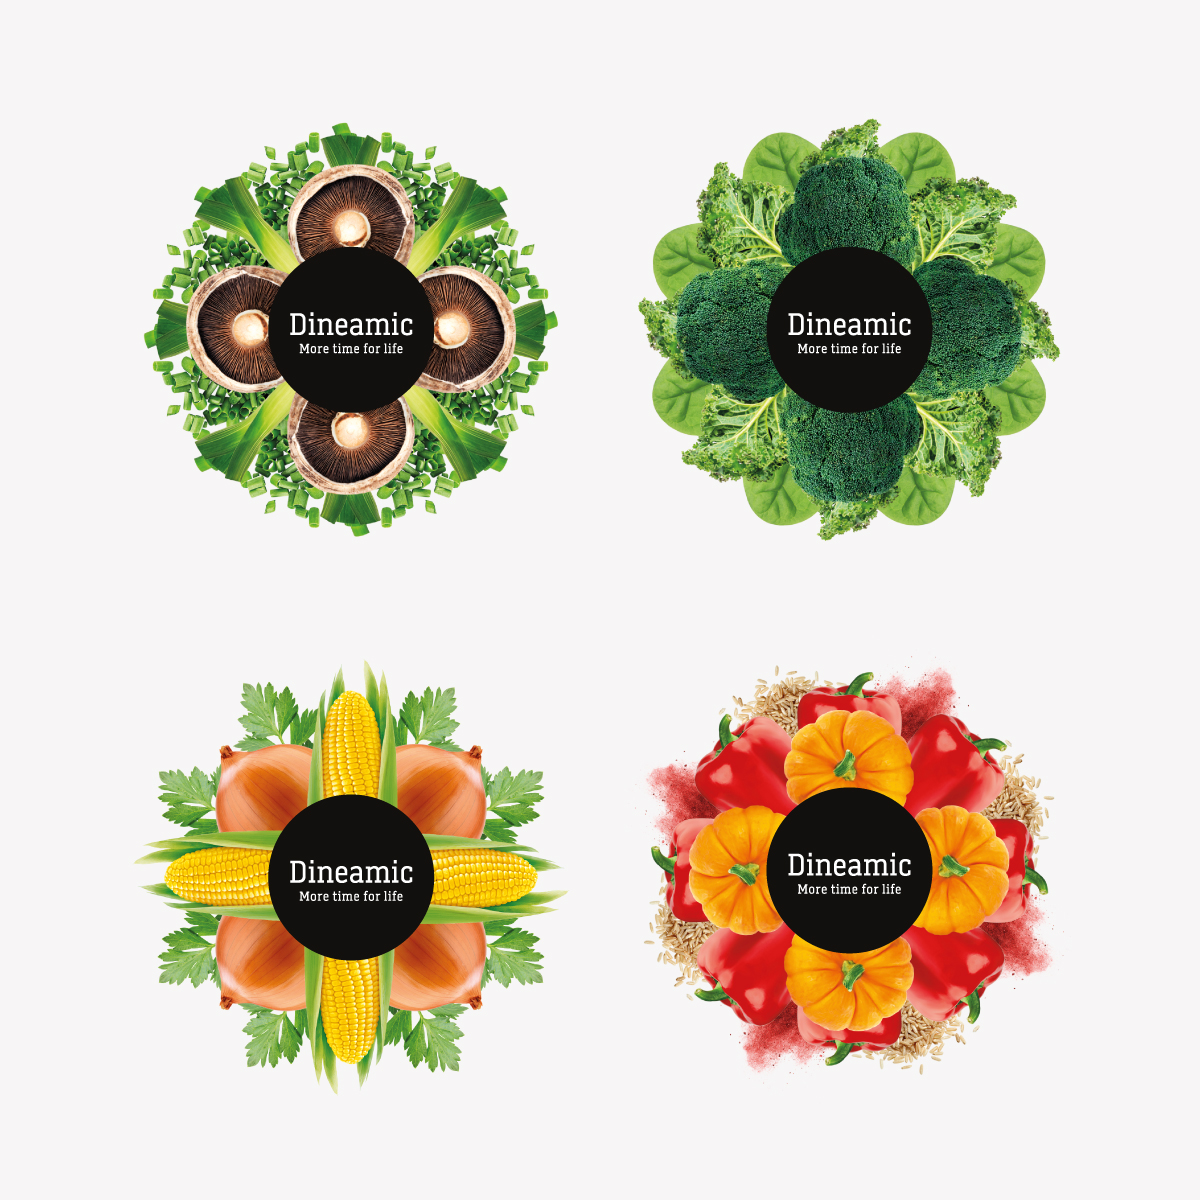 Davidson Branding FMCG Dineamic Packaging Visual Language Kaleidoscope Graphic Range